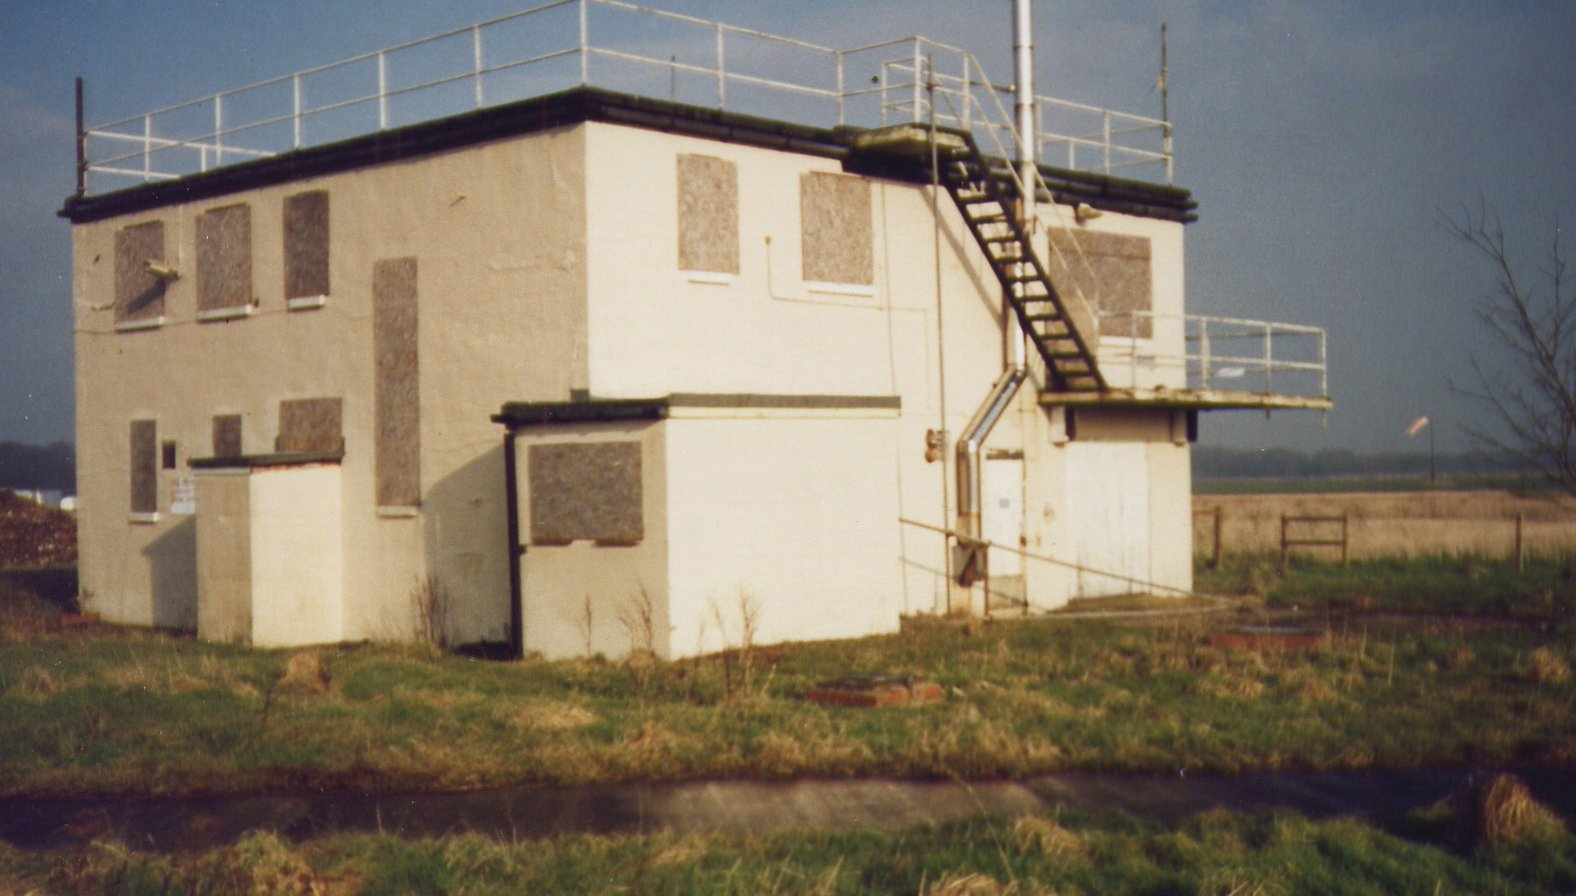 dunkseswell control tower